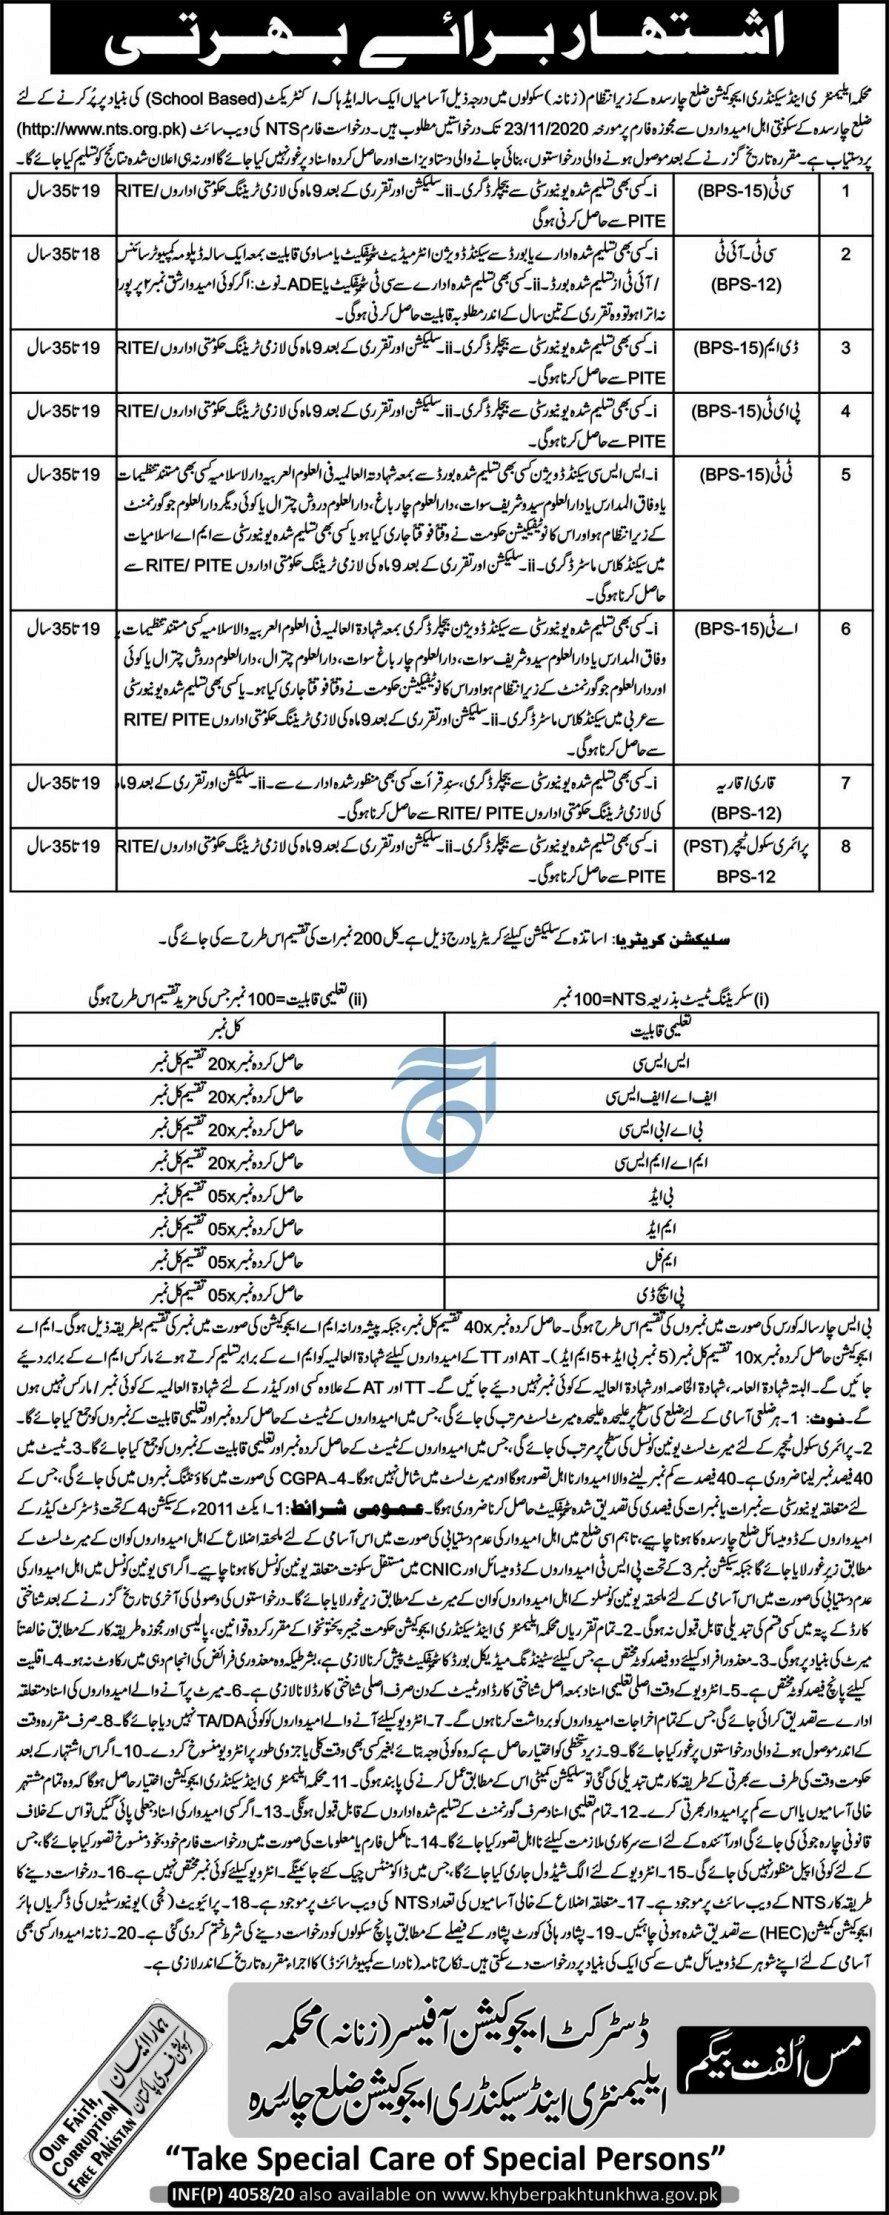 Charsadda Schools Elementary Secondary Education Jobs NTS Roll No Slip